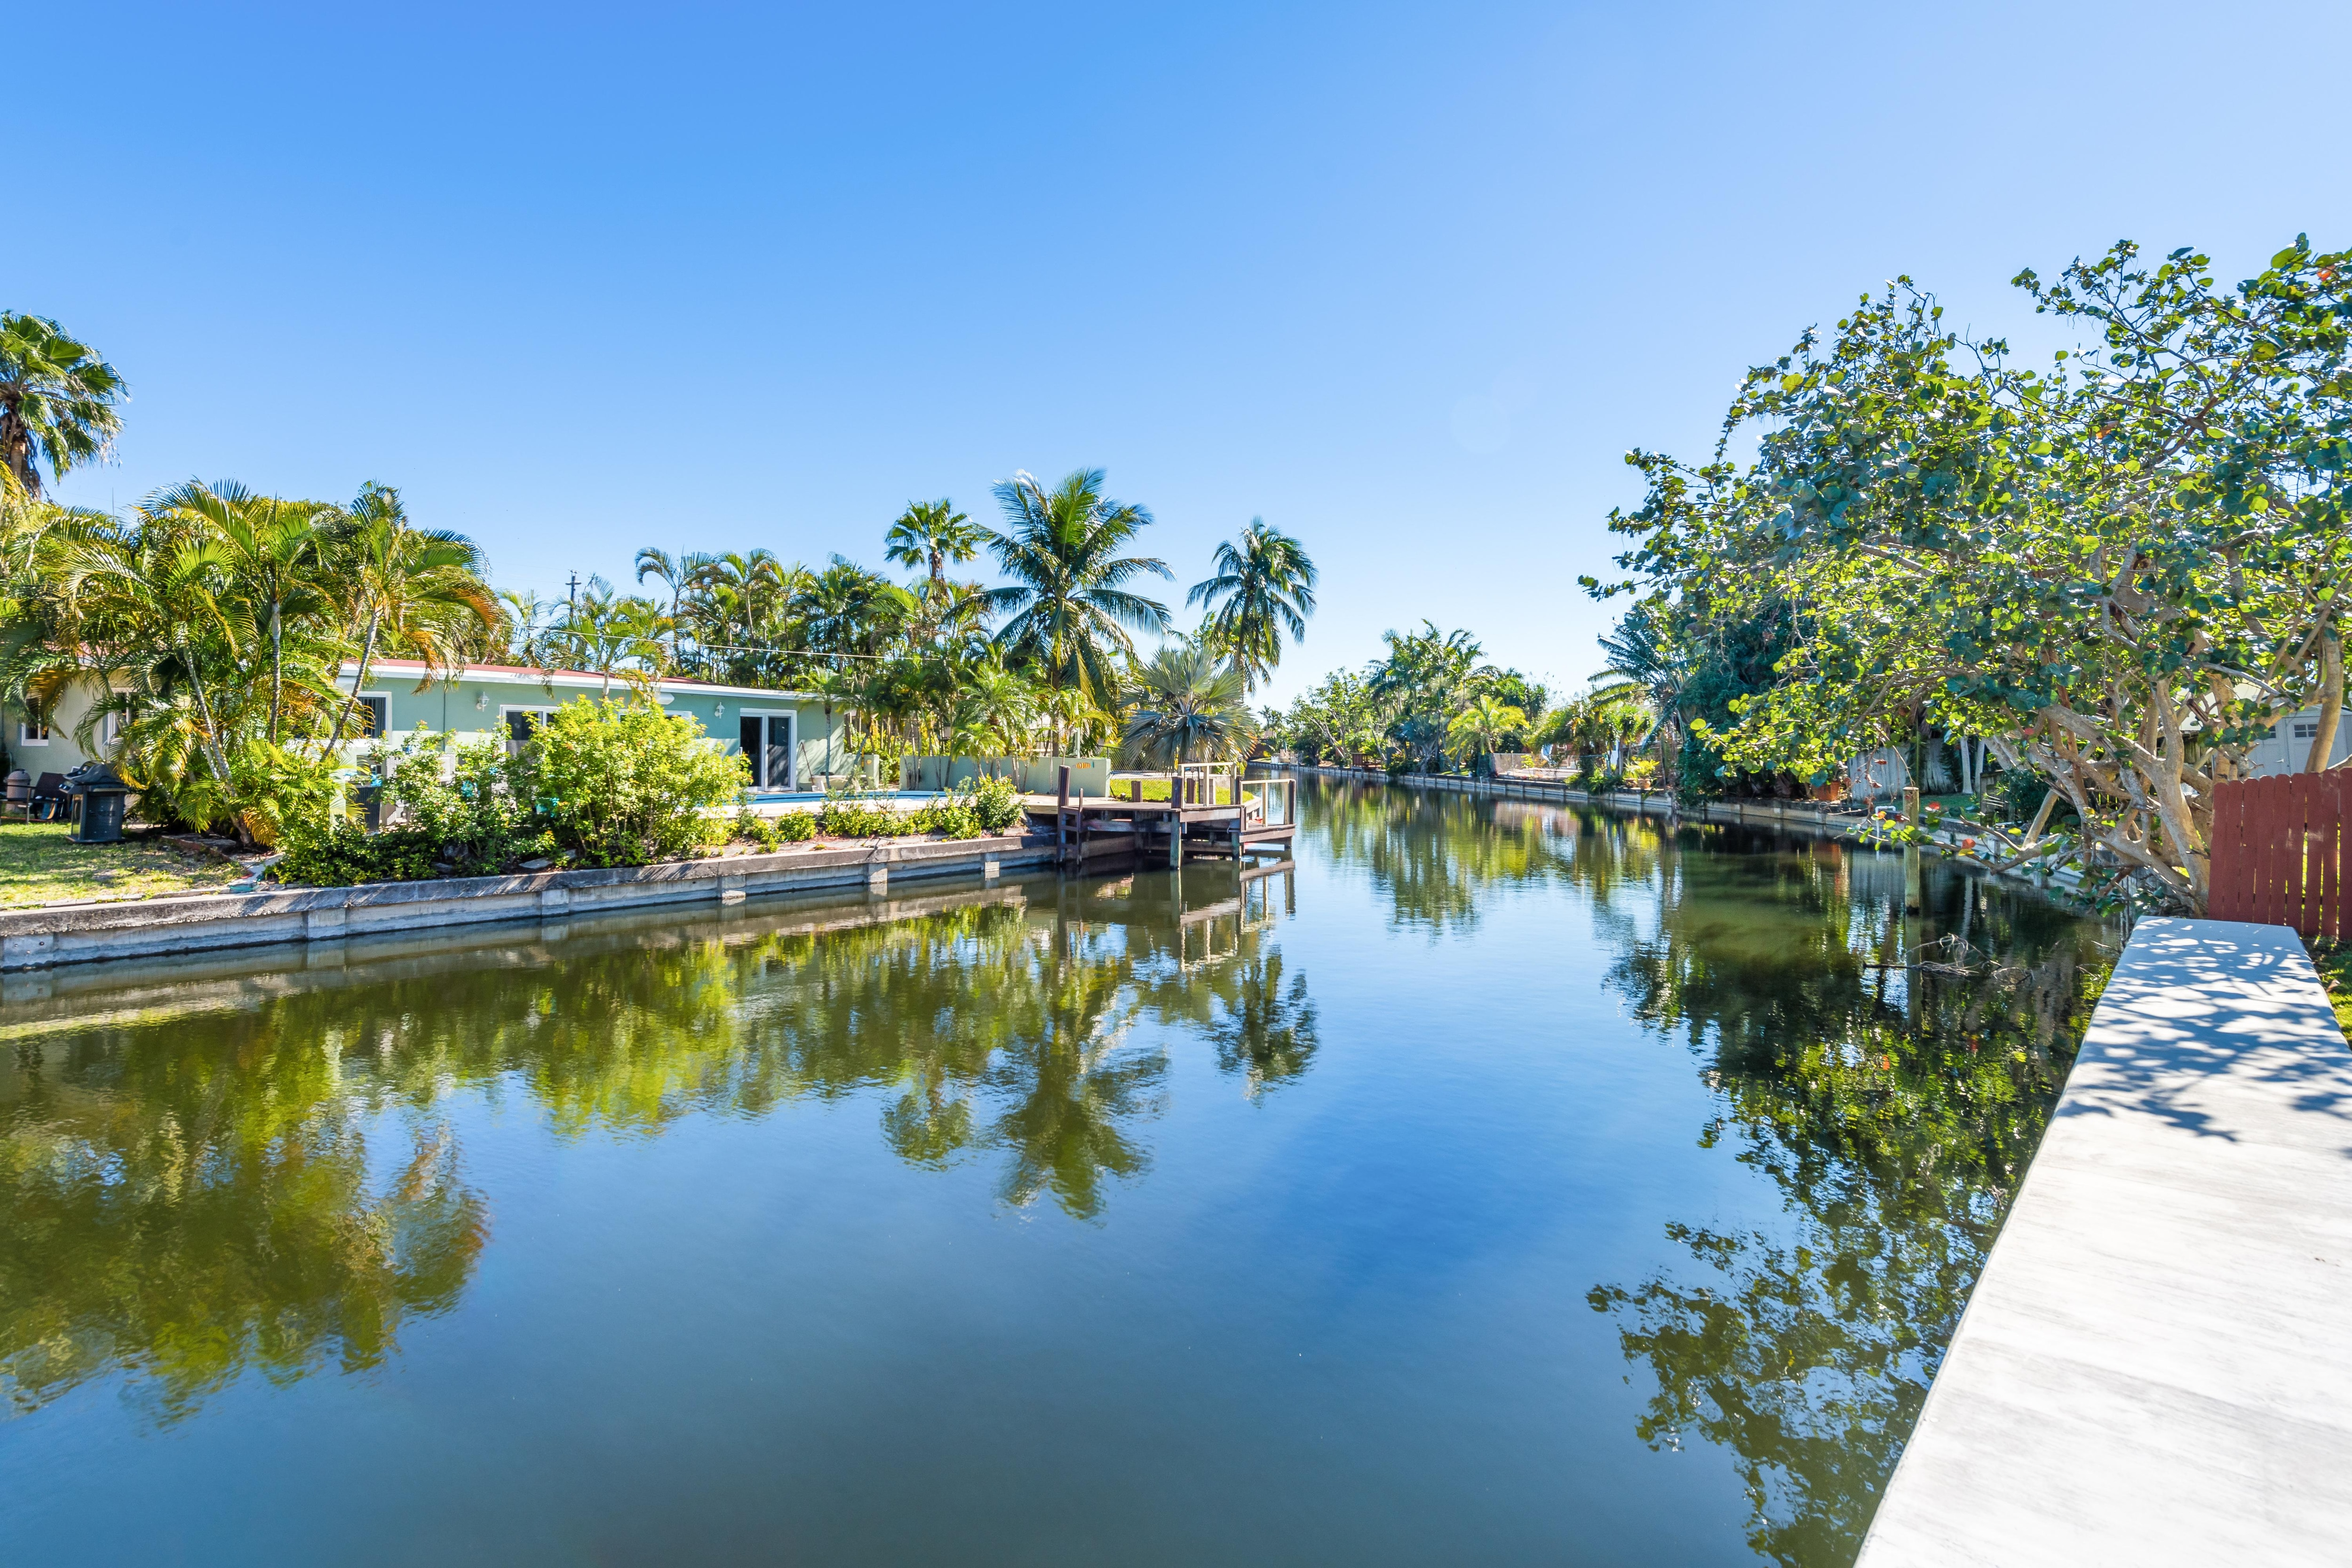 Your modern vacation home is set along the canal in sunny Oakland Park.